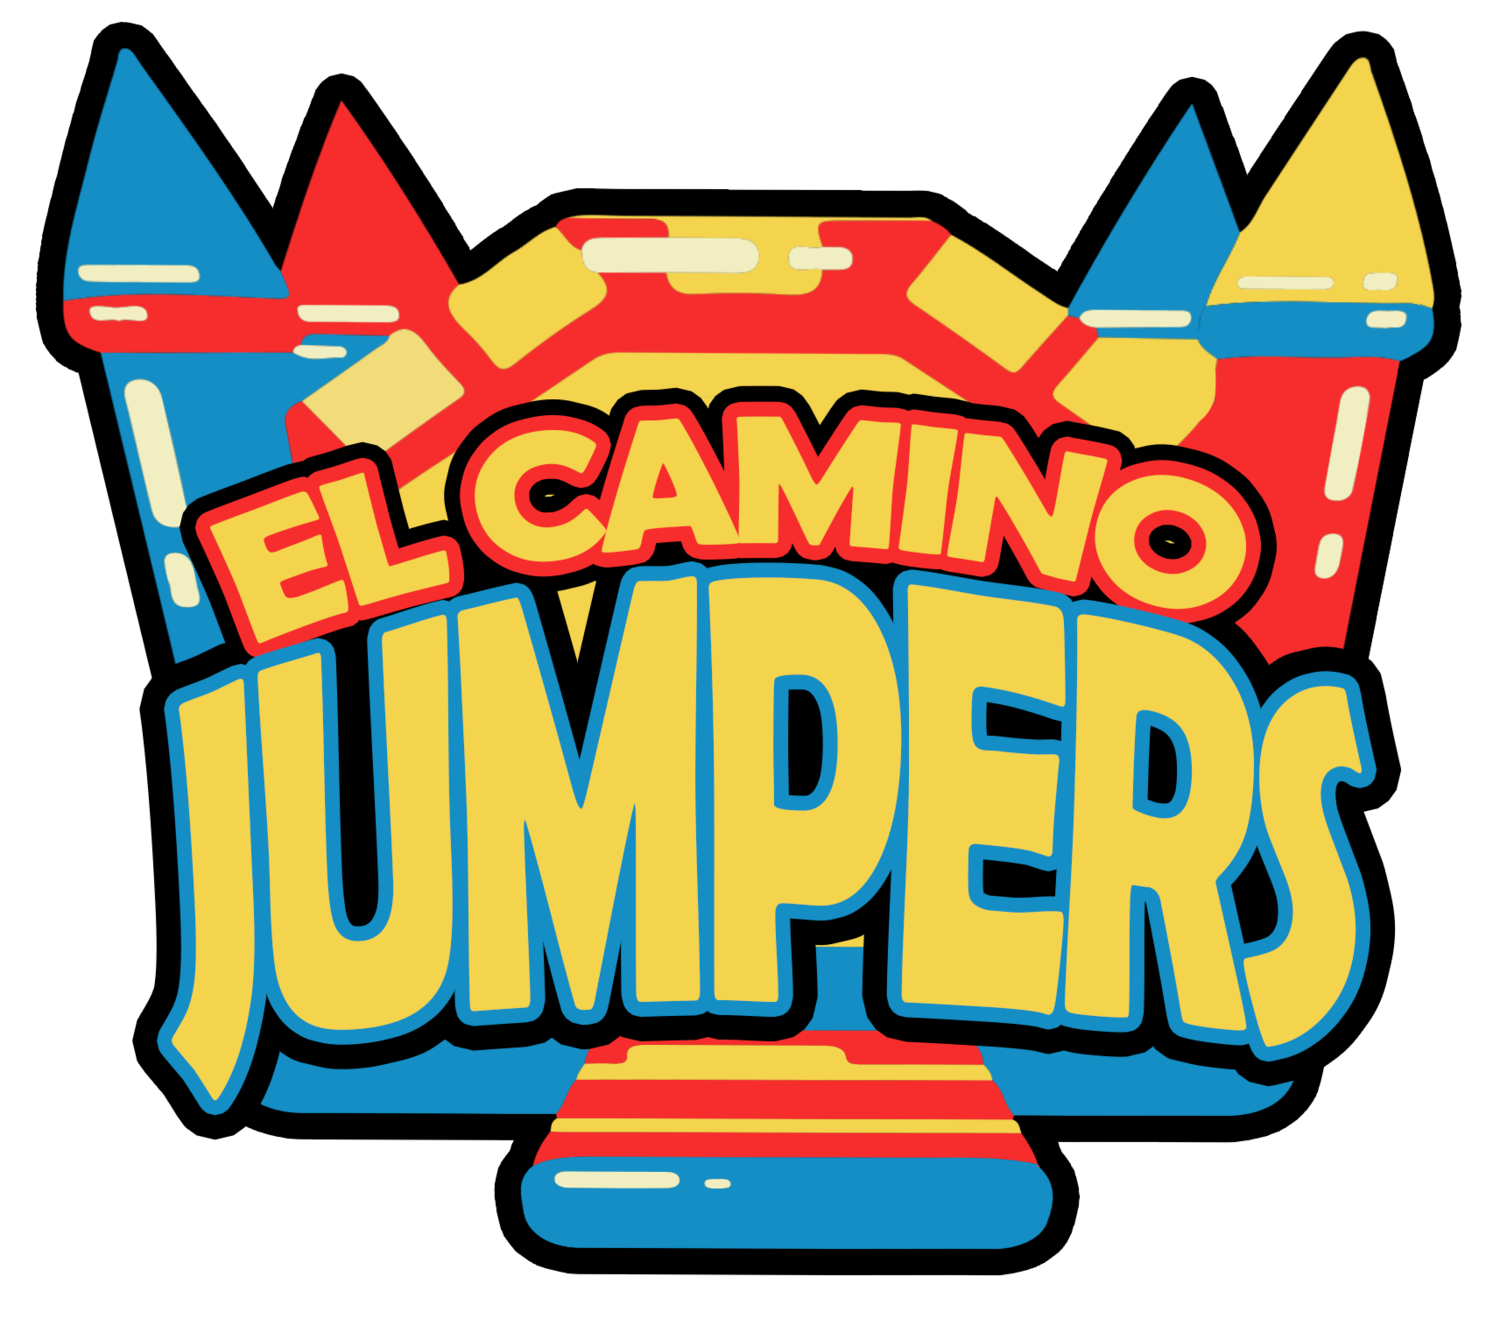 El Camino Jumpers